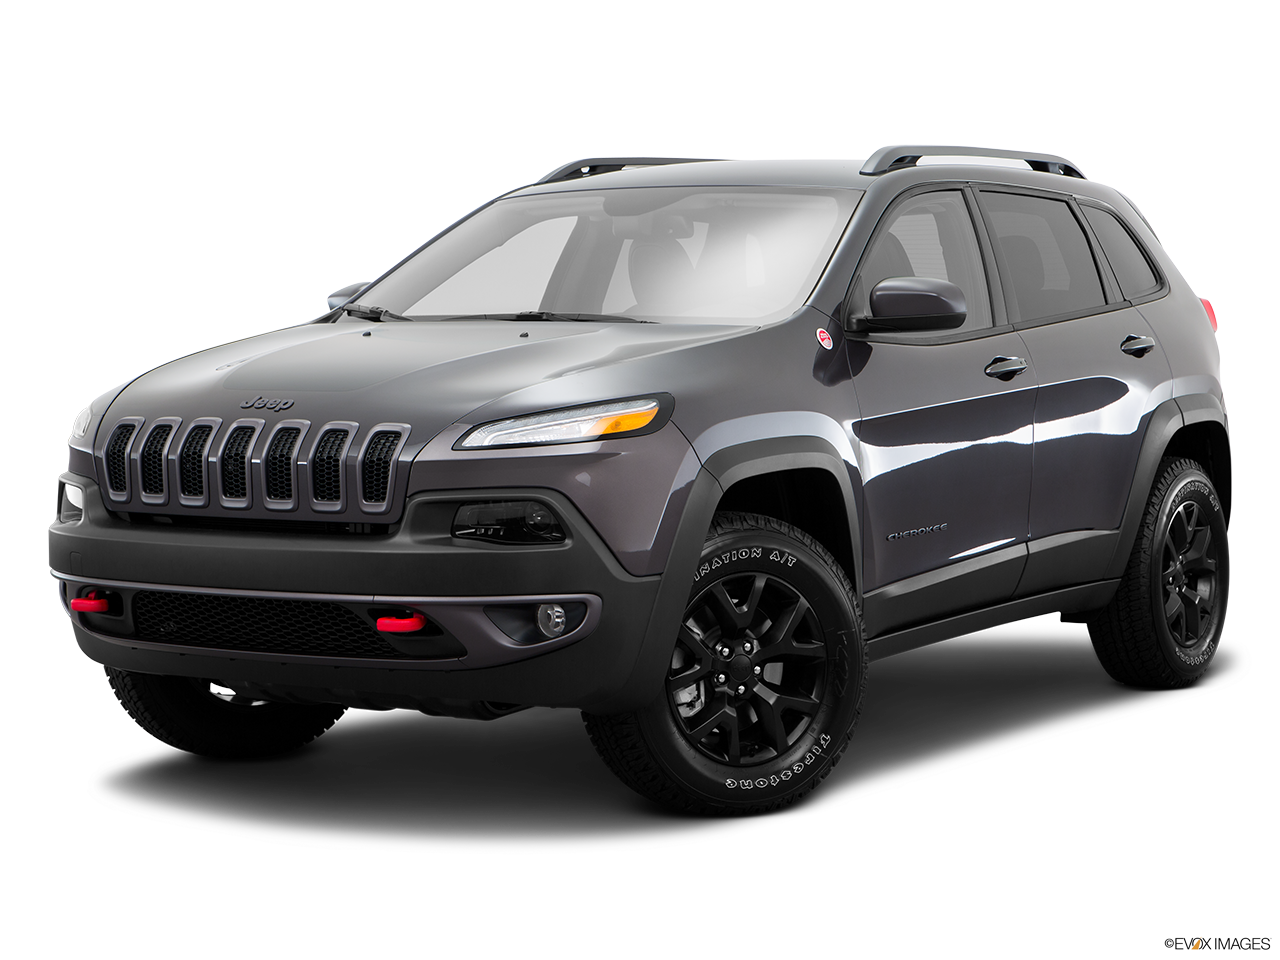 2016 jeep cherokee png. Dealer in new